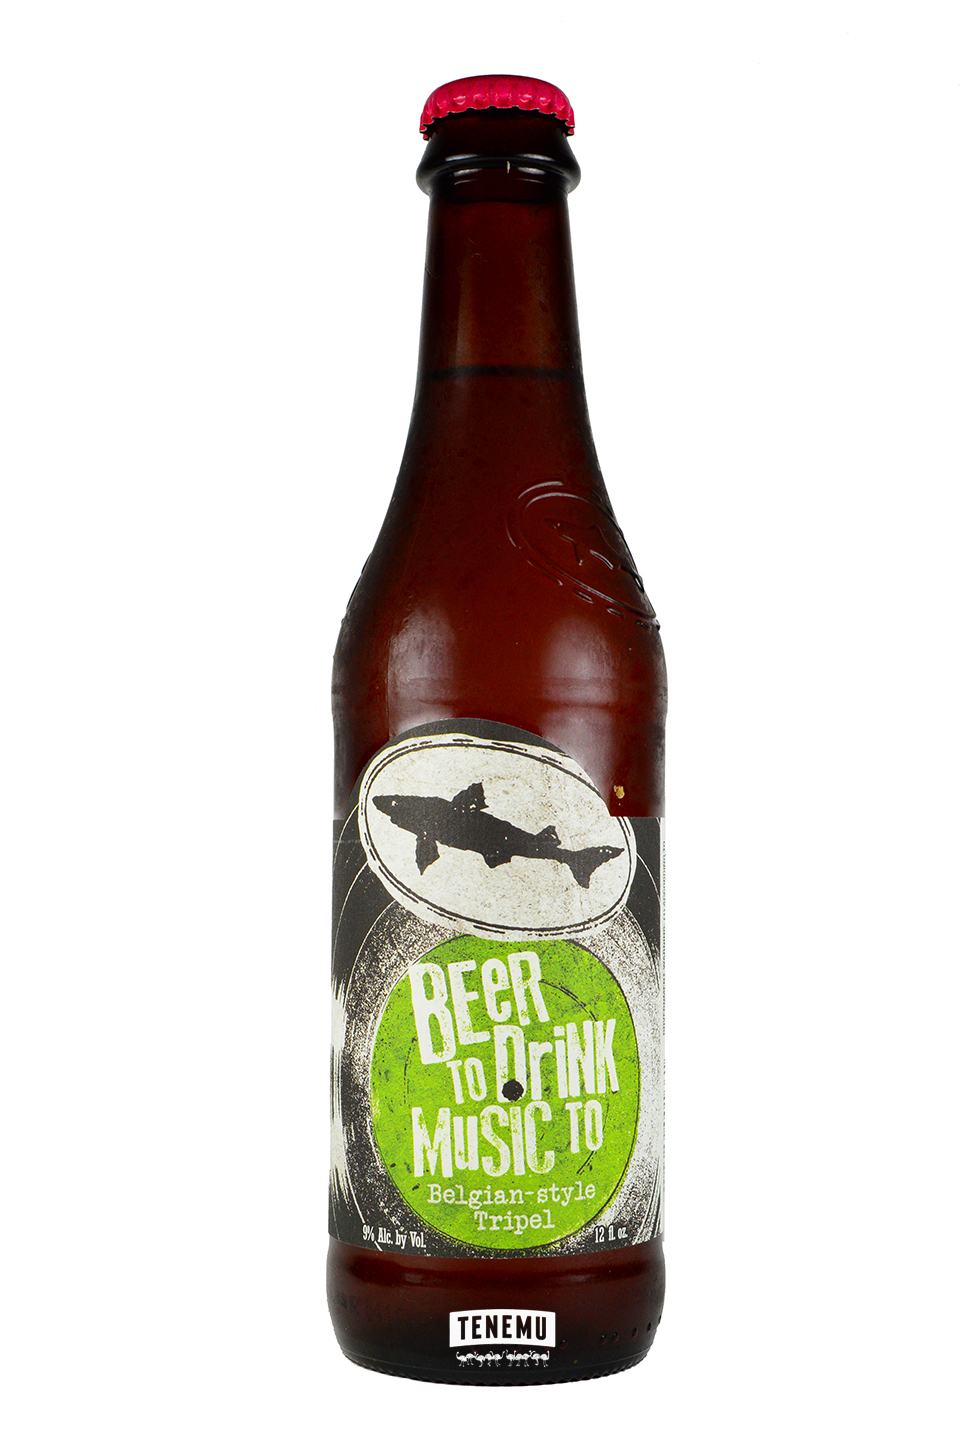 Dogfish Head Beer to Drink Music To bottle